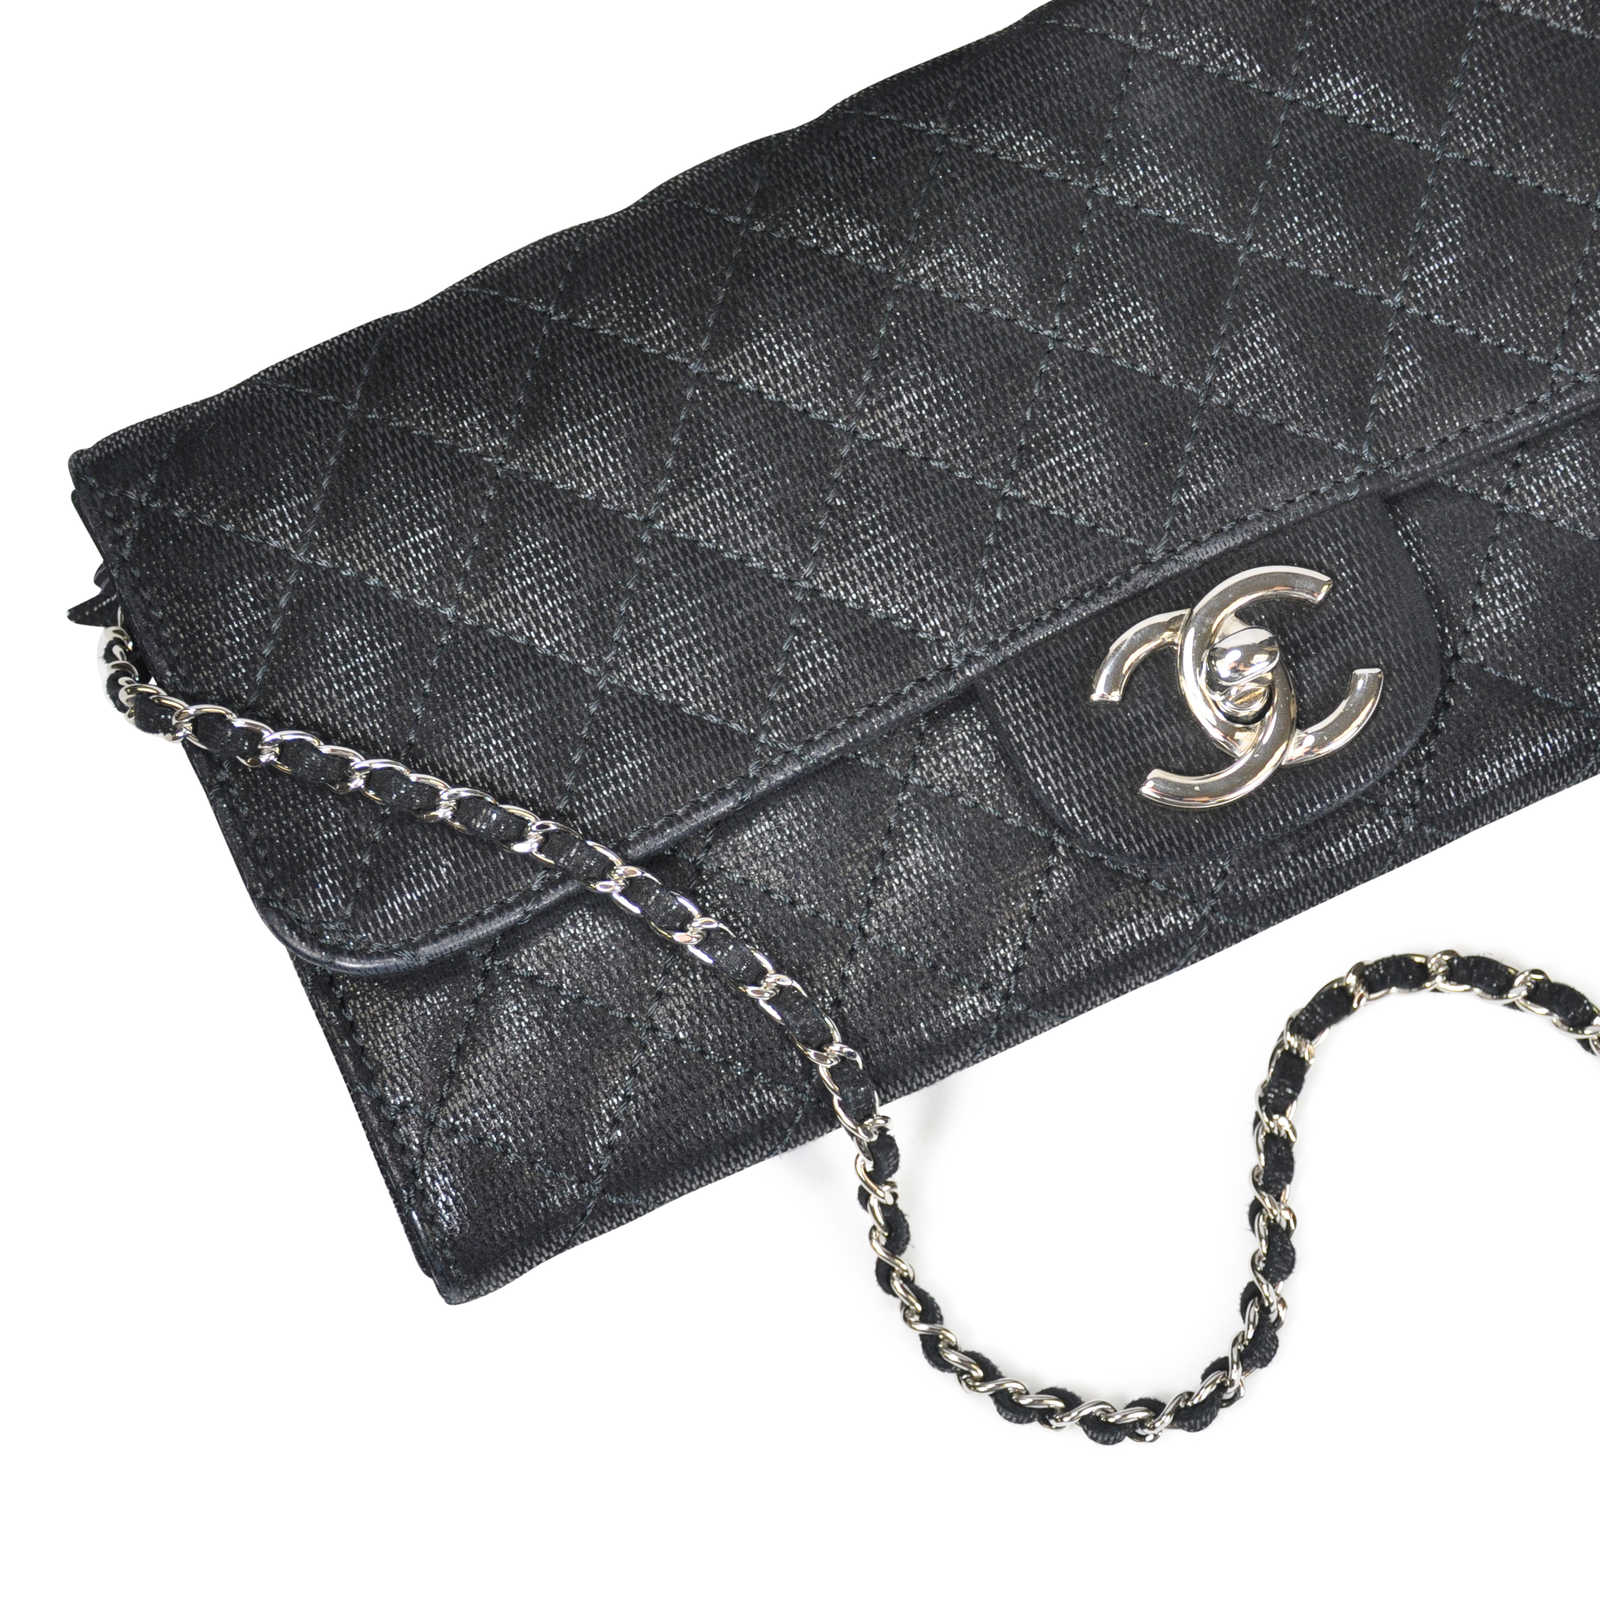 b8a1e89cef9c ... Authentic Second Hand Chanel Long Wallet On Chain Bag (PSS-062-00006)  ...